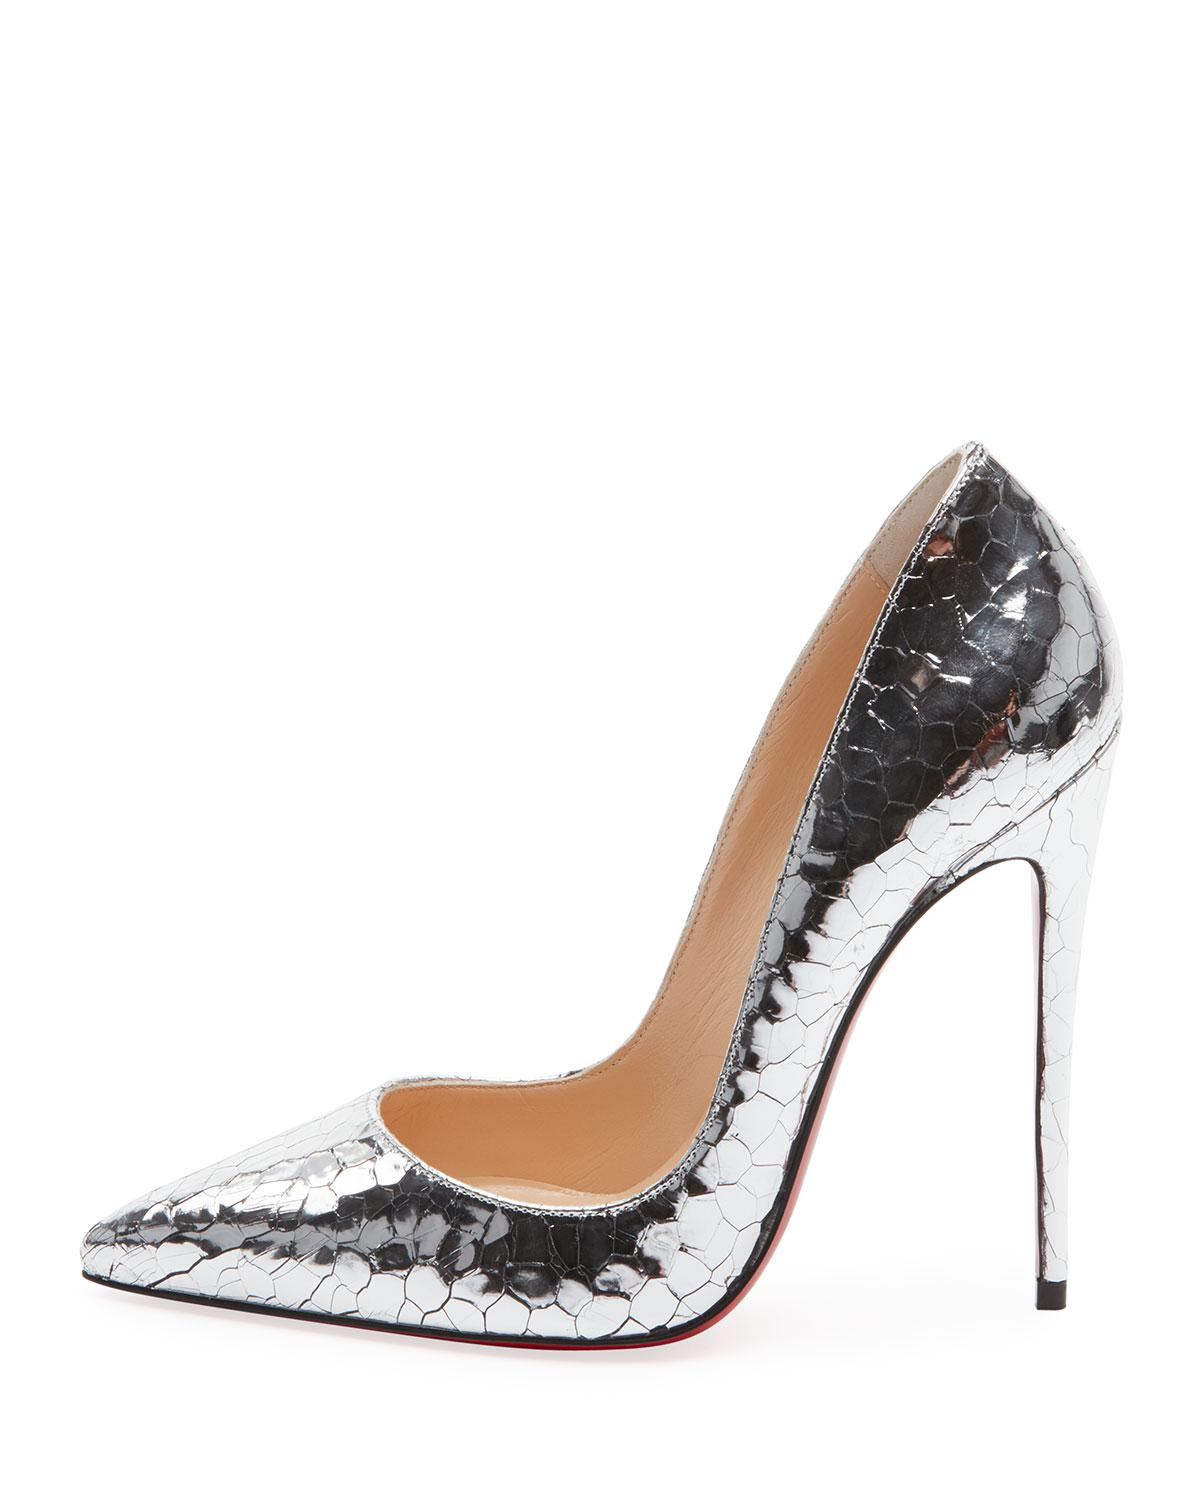 finest selection 3d2e4 42bcd Christian Louboutin Metallic Eklectica Crackled Red Sole Pumps